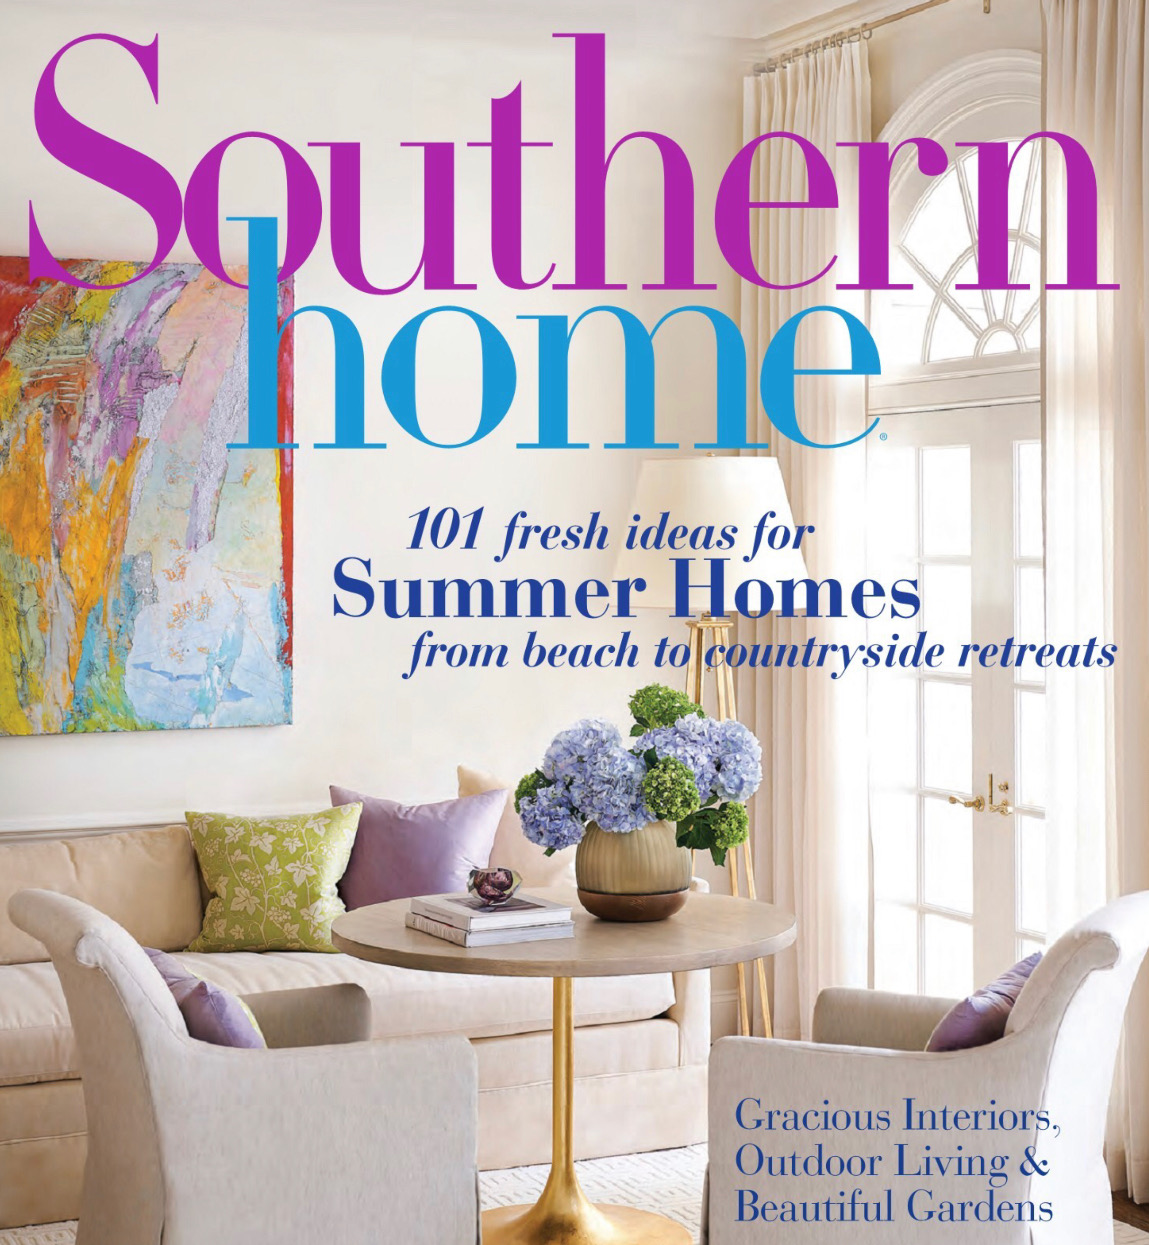 southern home magazine july/august issue